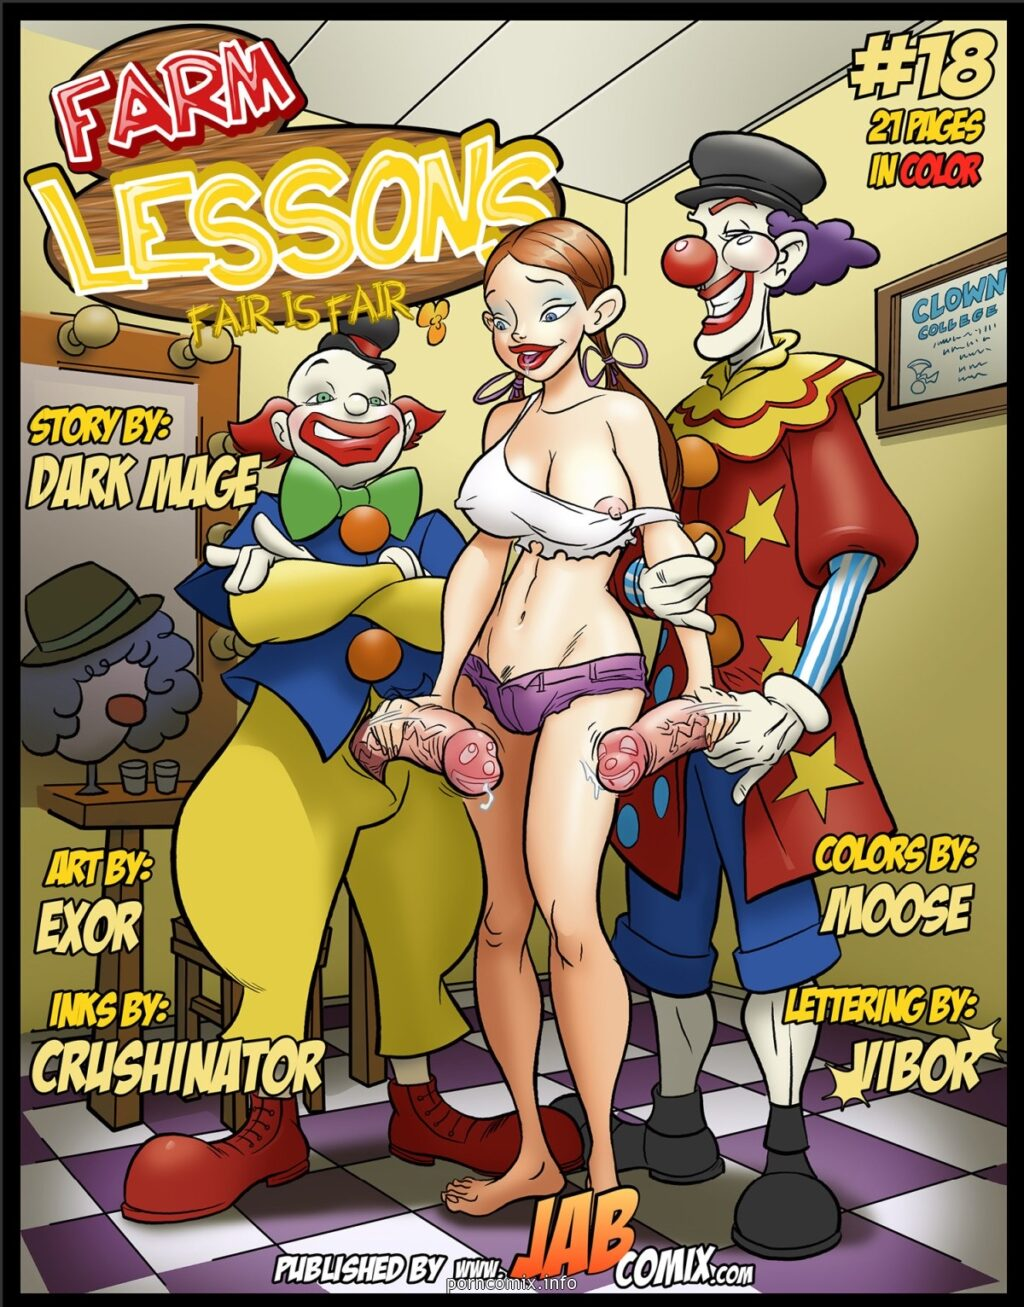 Farm-Lessons-number-18-Beastiality-asian-interracial-threesome-porn-jab-comics-hentai-manga-incest-cousins-Small-Breasts-thicc-Dark-Skin-shorts-Voyeurism-Straight-Sex-camel-toe-redhead-Big-Cock-dick-sucking-twins-transformation